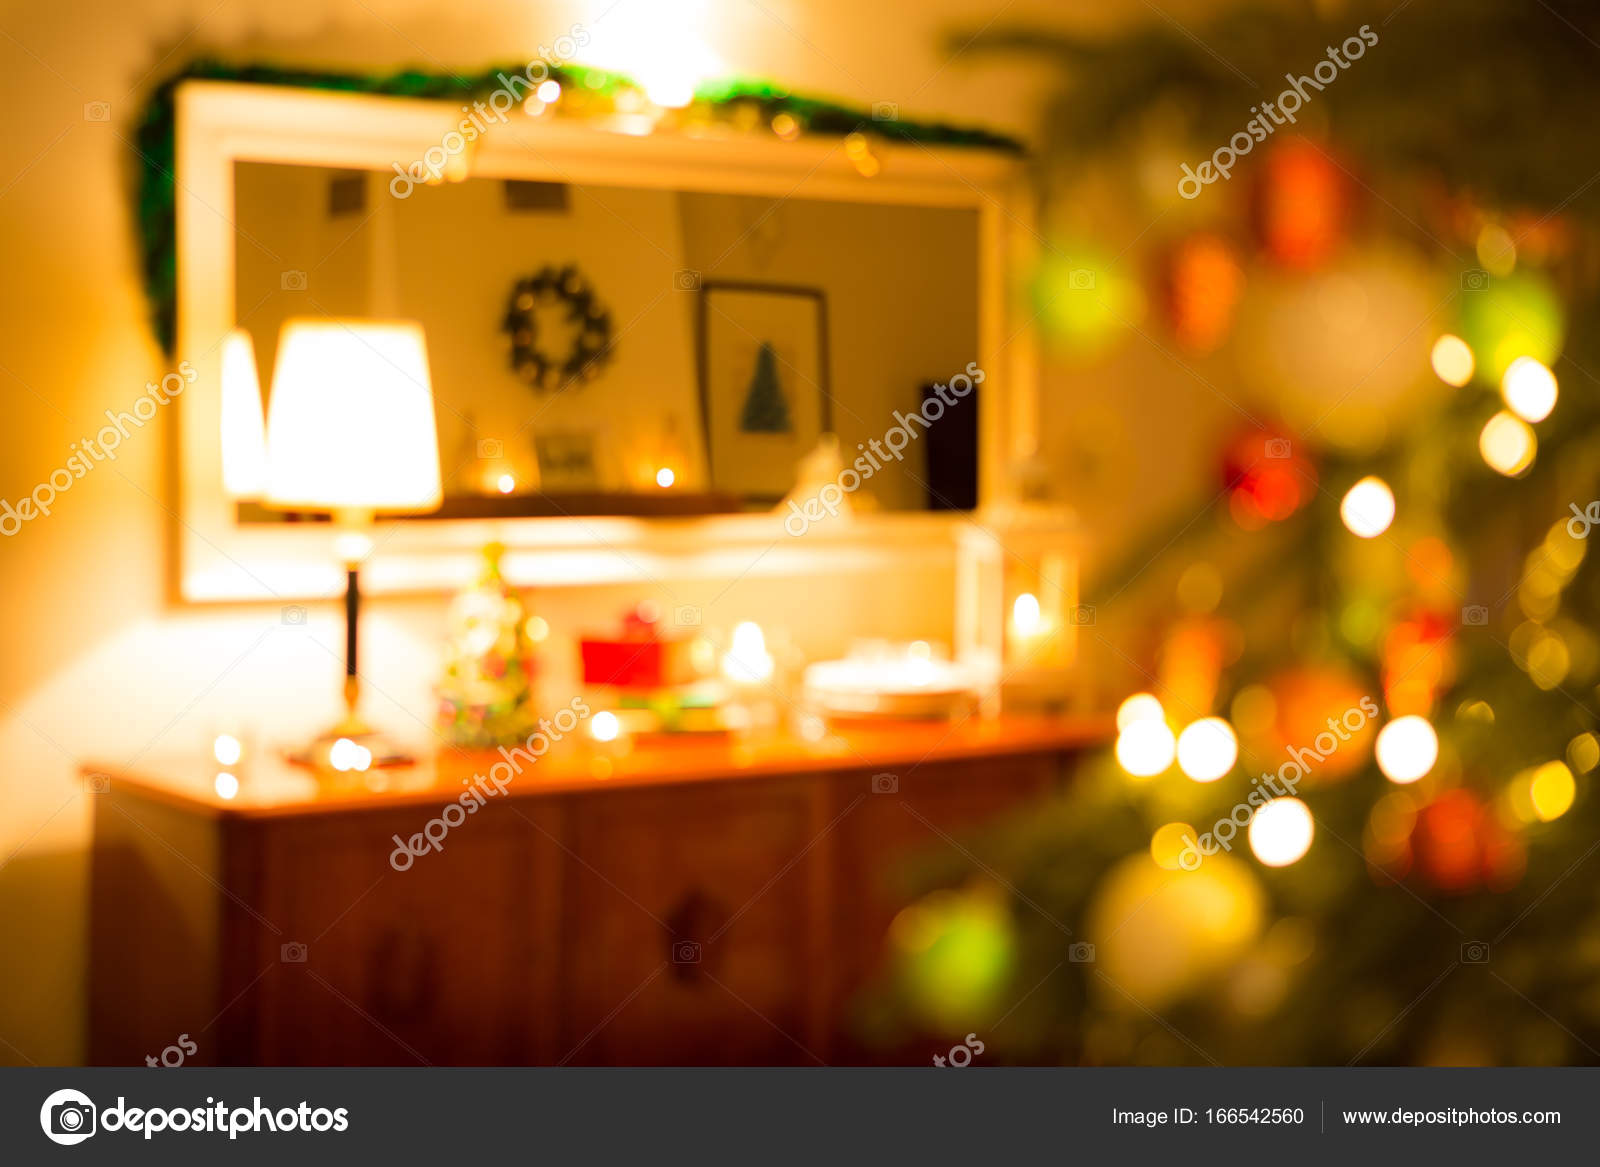 Blurred House blurred background cozy home interior stock photo pinkyone 166542560